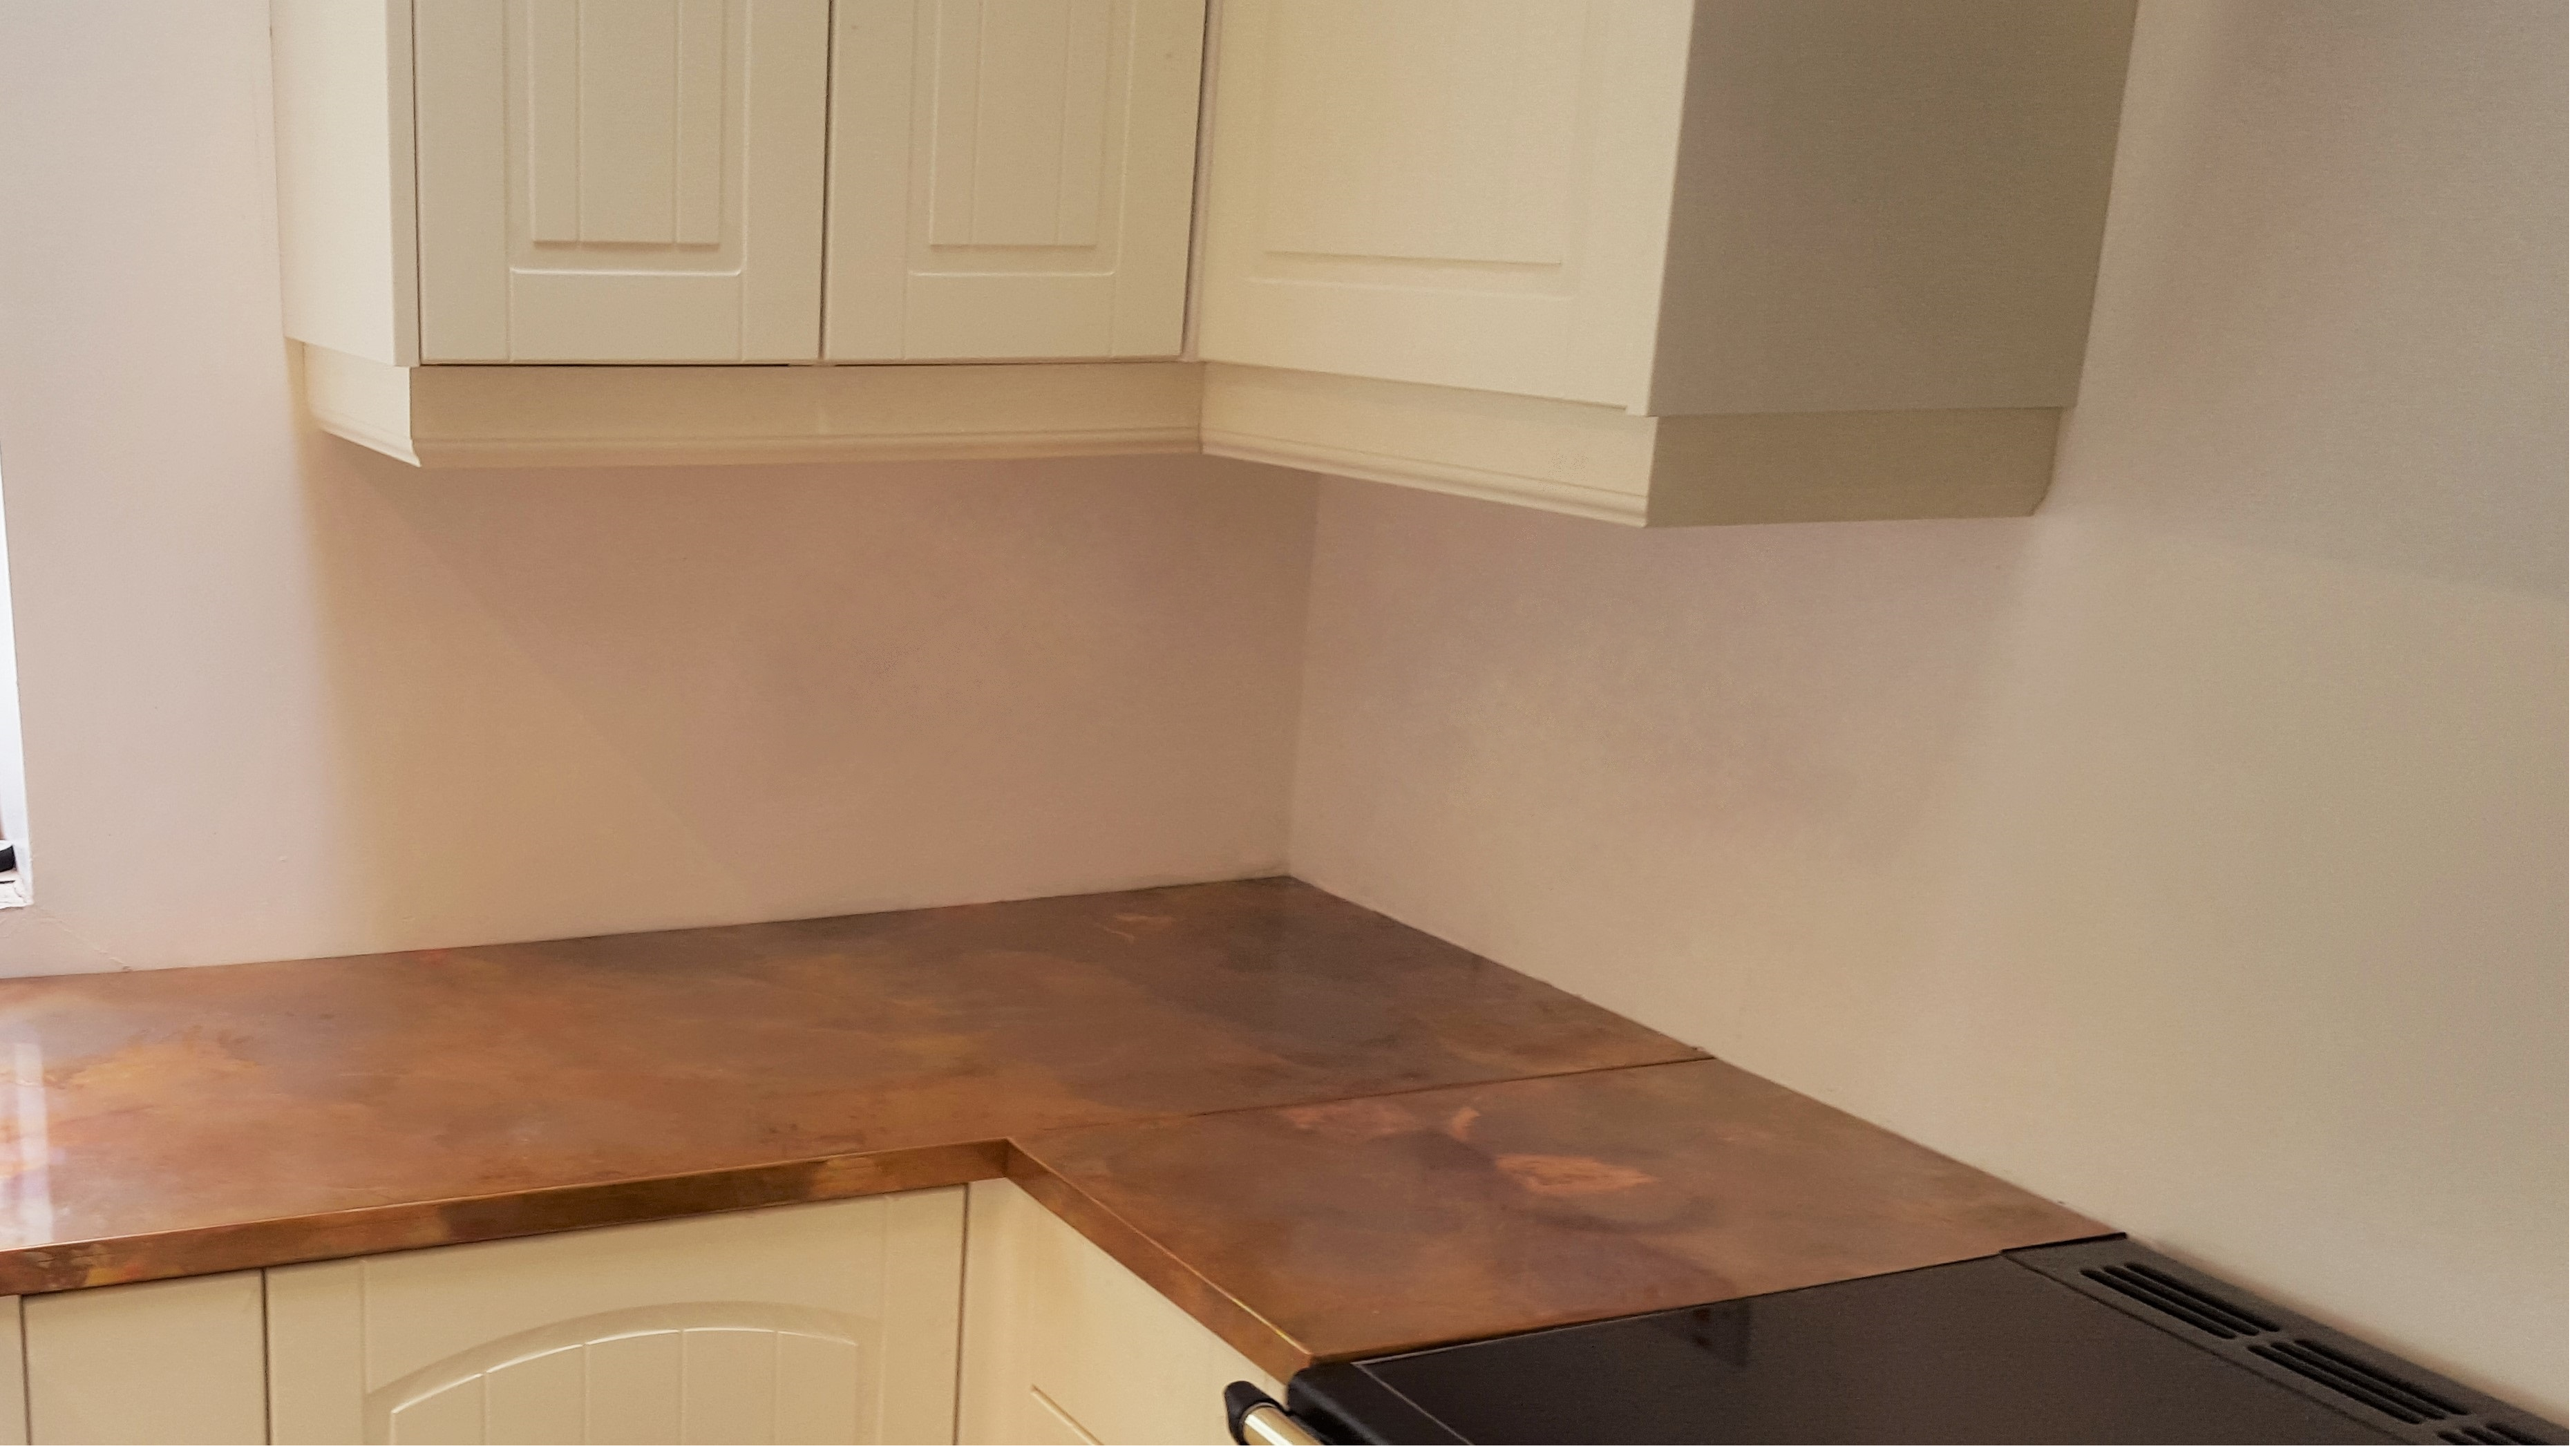 Copper worktops, counter top